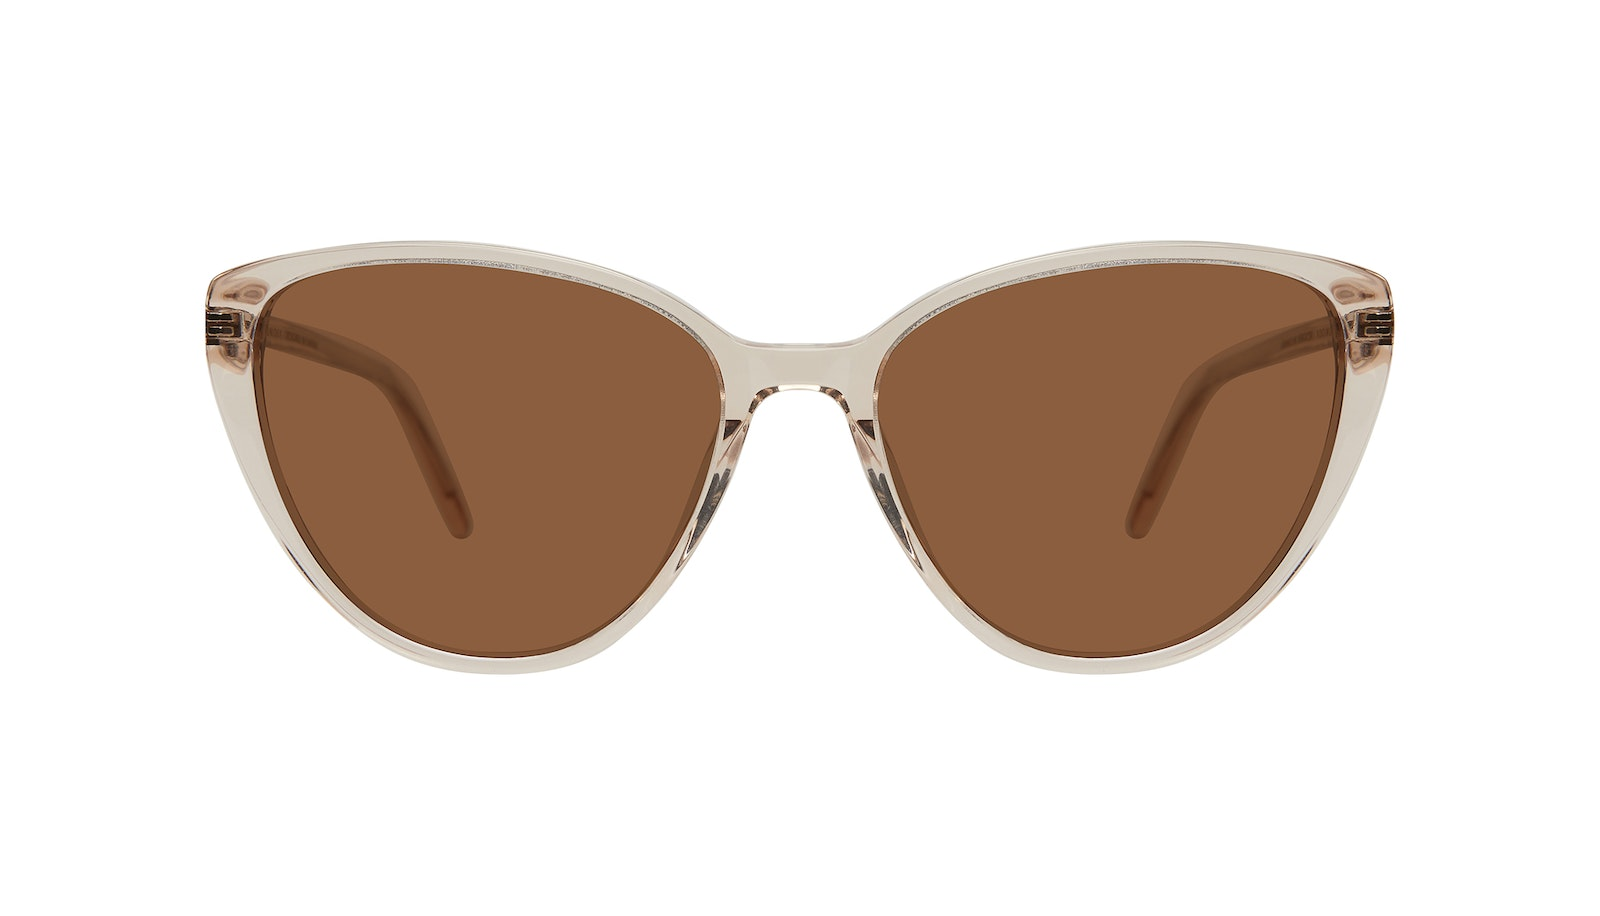 Affordable Fashion Glasses Cat Eye Sunglasses Women Poise Blond